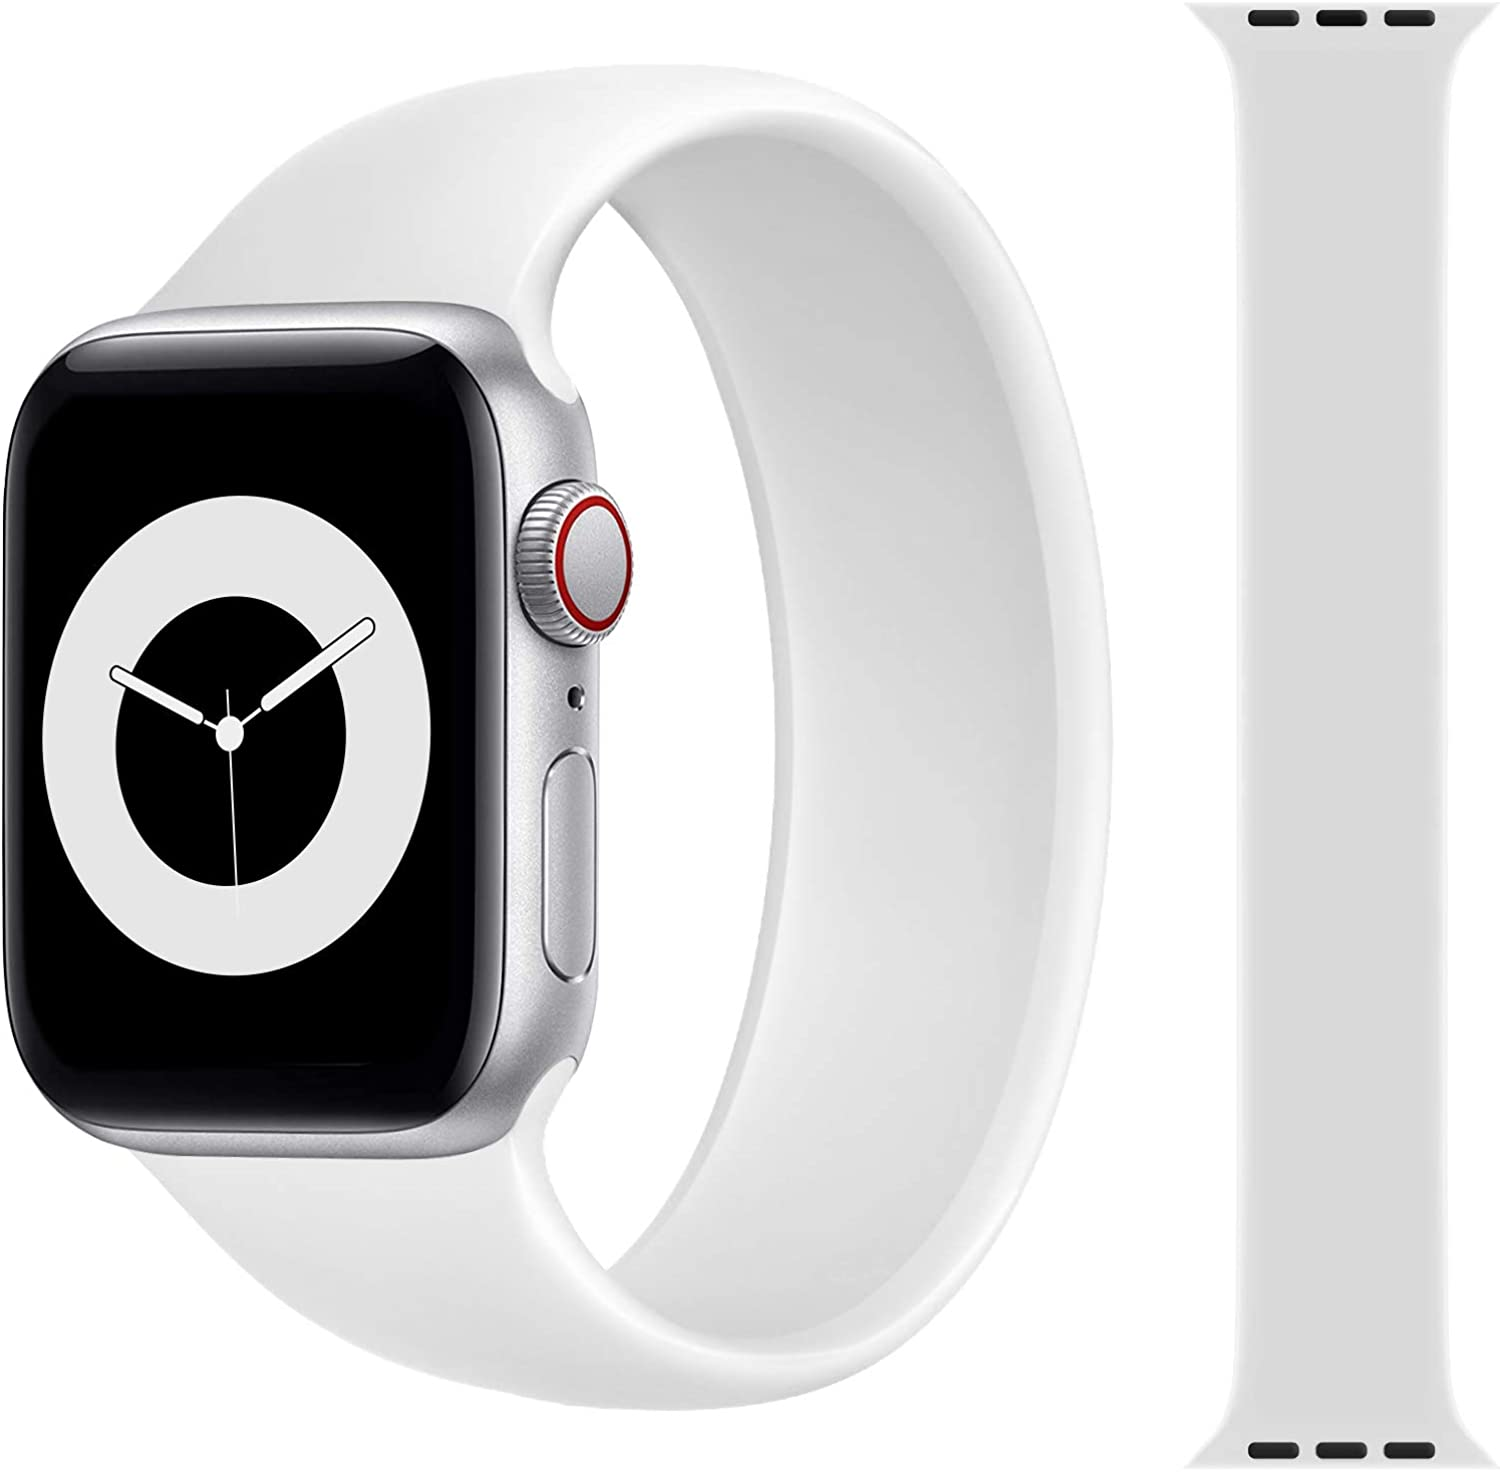 JIELIELE Solo Loop Strap Compatible with Apple Watch Band 38mm 40mm 42mm 44mm, Sport Elastics Silicone Apple Watch Bands Women Men, Replacement Wristband for iWatch Series 6 5 4 3 2 1 SE (S M L)